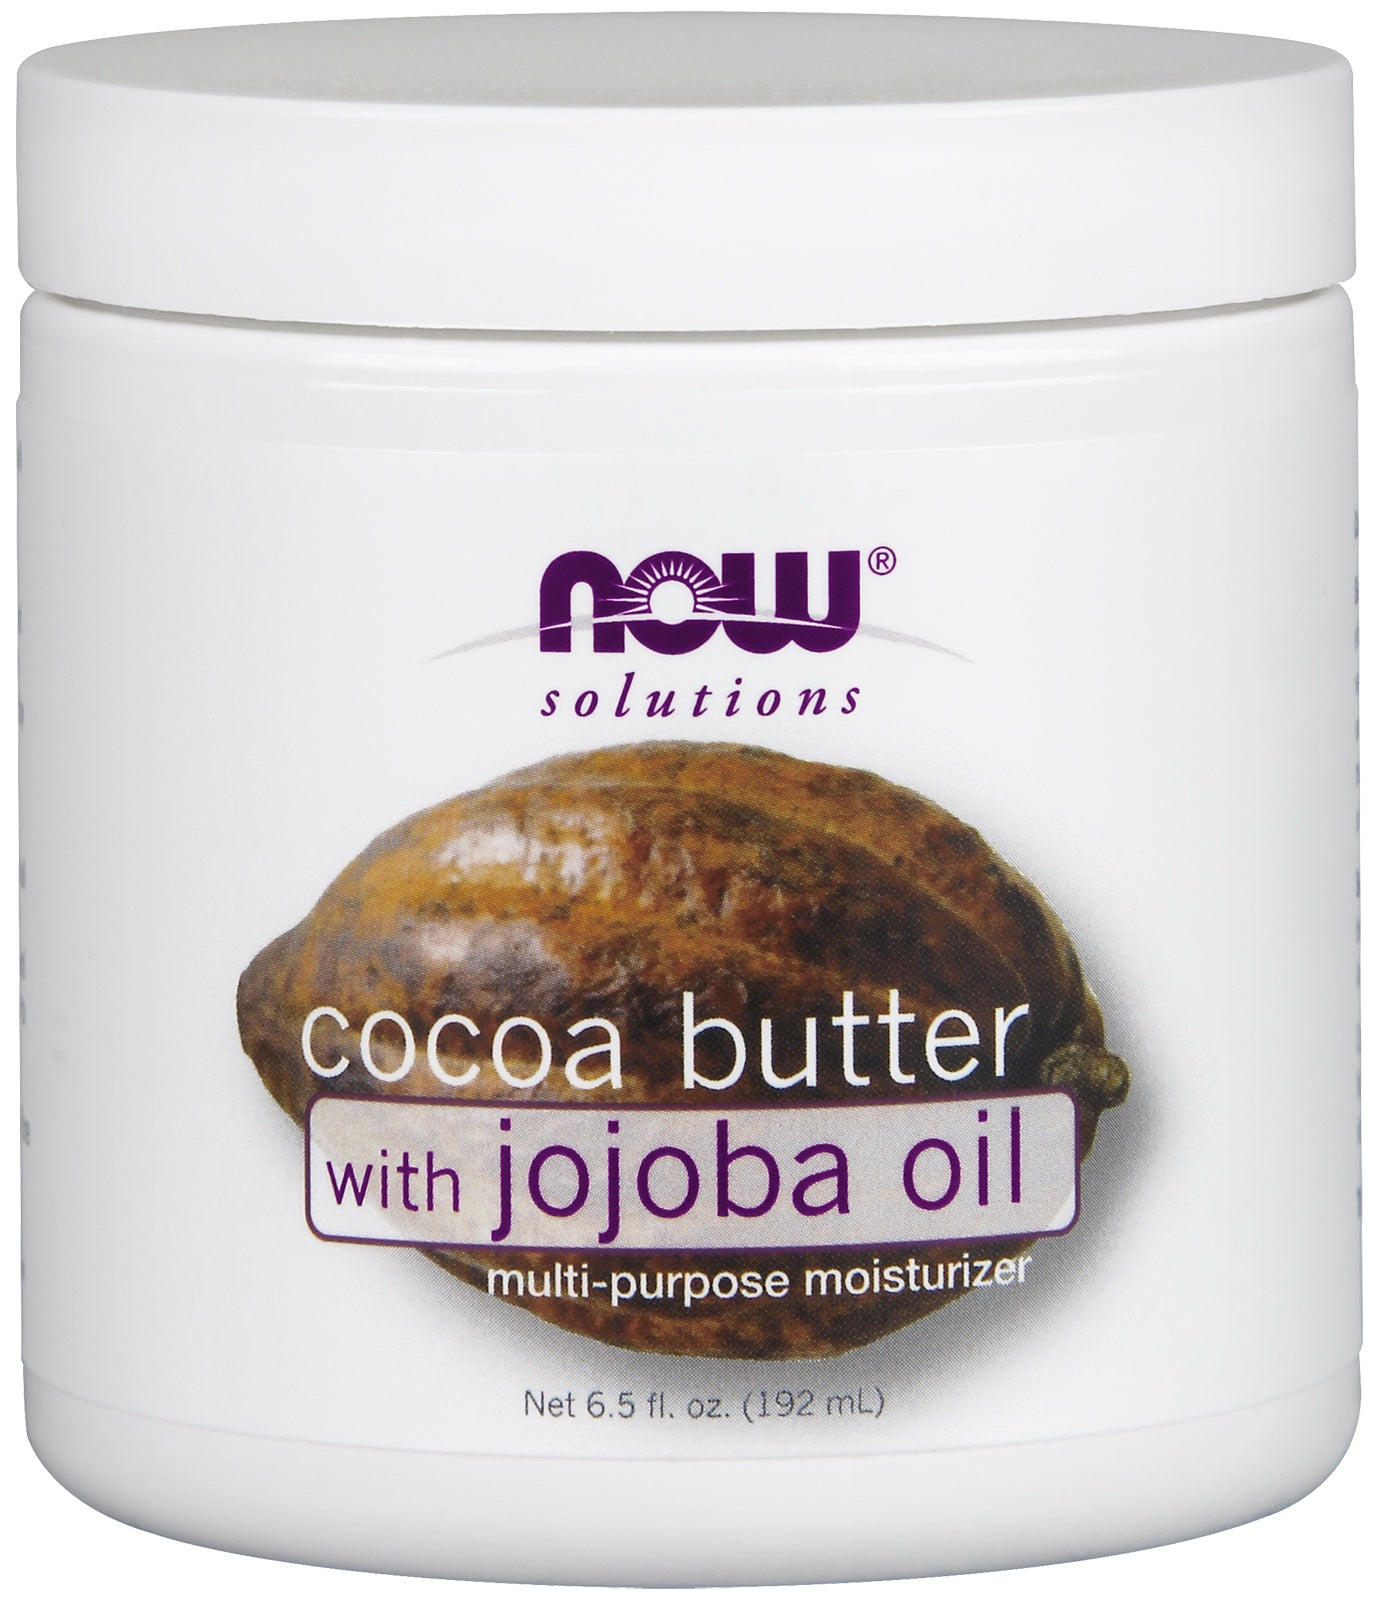 Cocoa Butter, 6.5 oz.